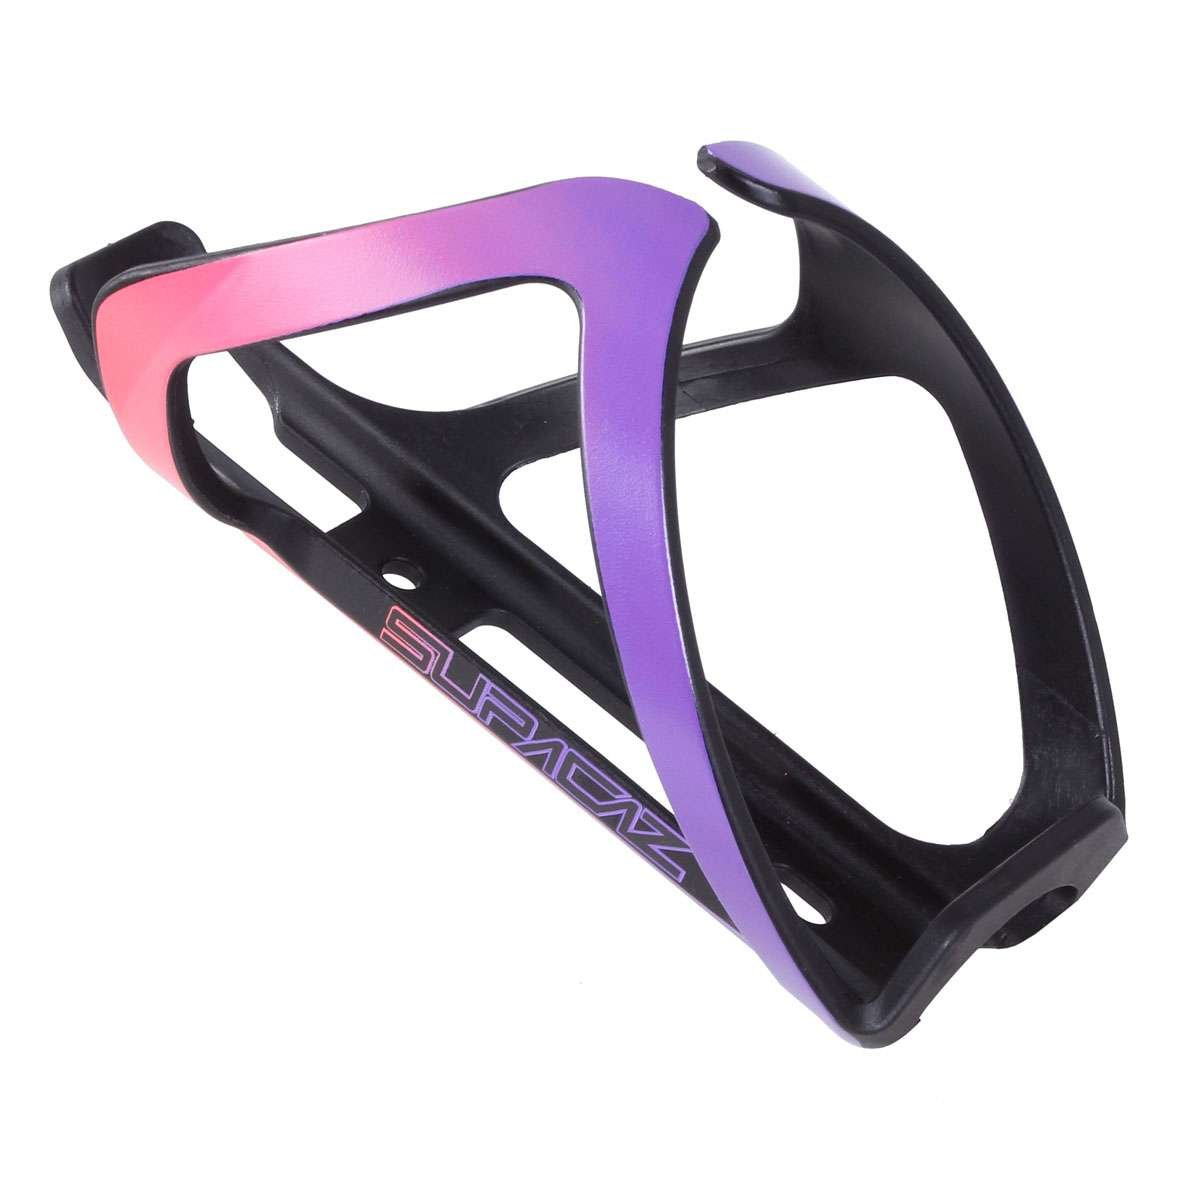 8d227764df Supacaz Unisex's Tron Side Entry Purple and Neon Pink Bottle Cage:  Amazon.co.uk: Sports & Outdoors